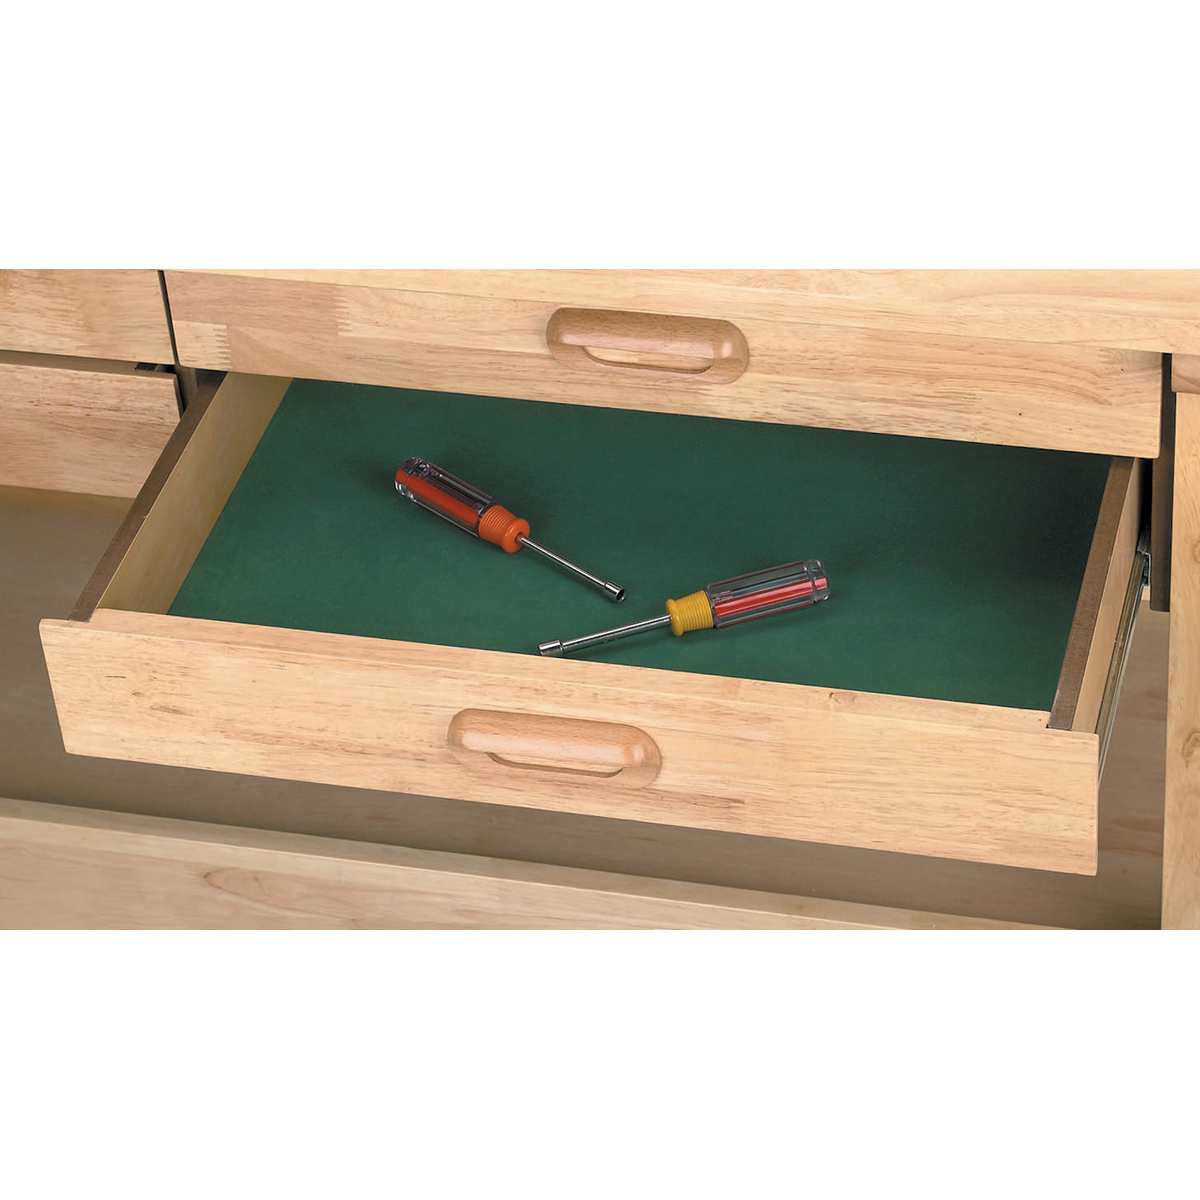 In drawer hardwood workbench